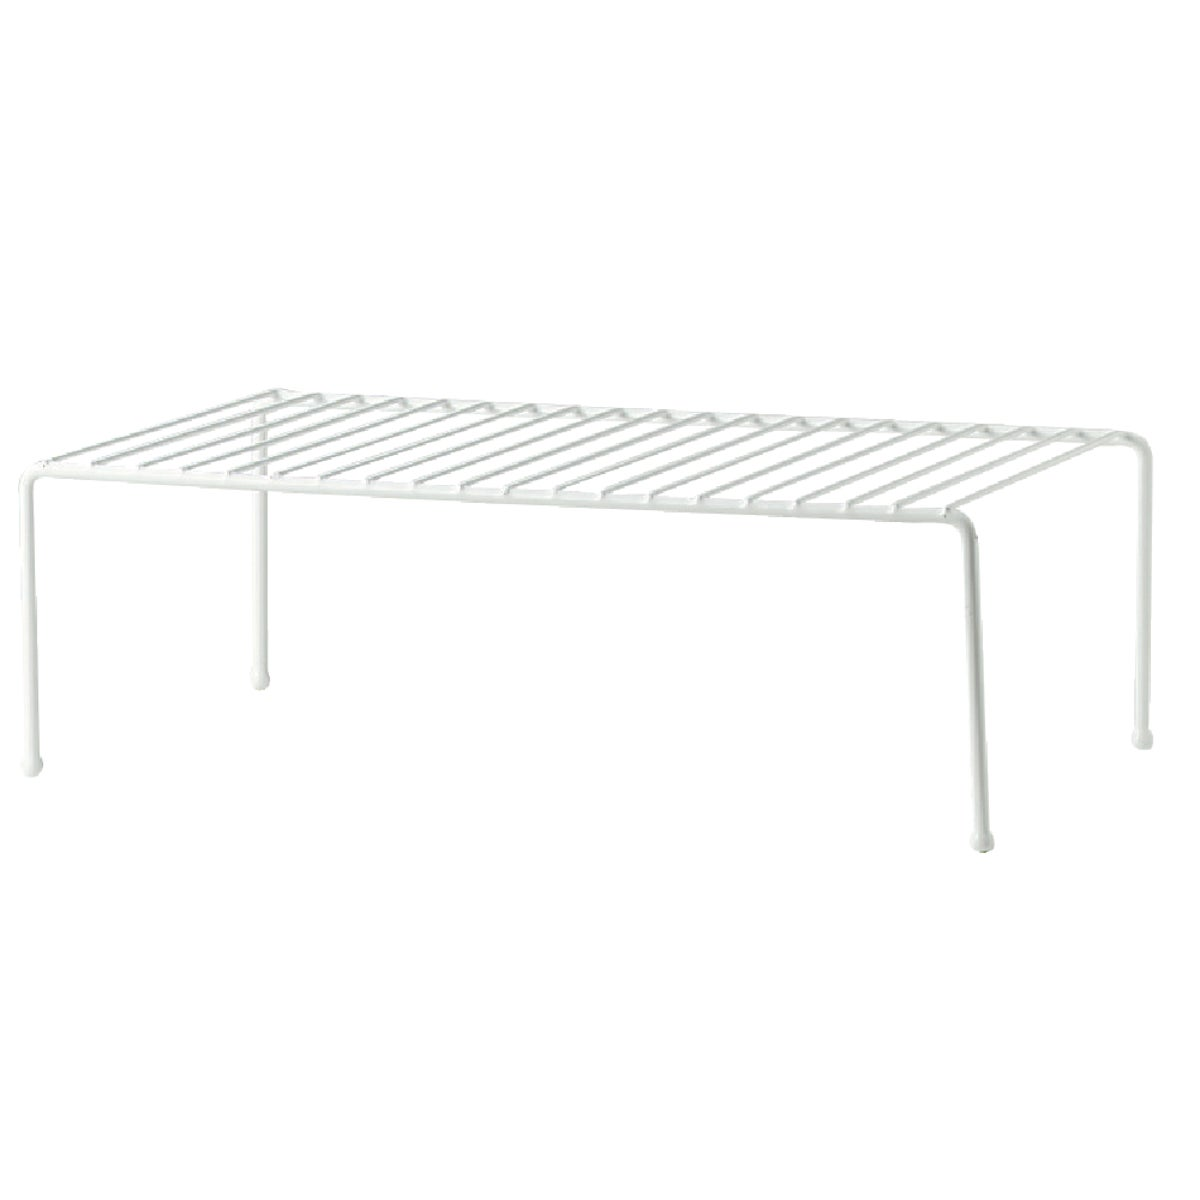 JUMBO HELPER SHELF - 40710 by Panacea    Grayline